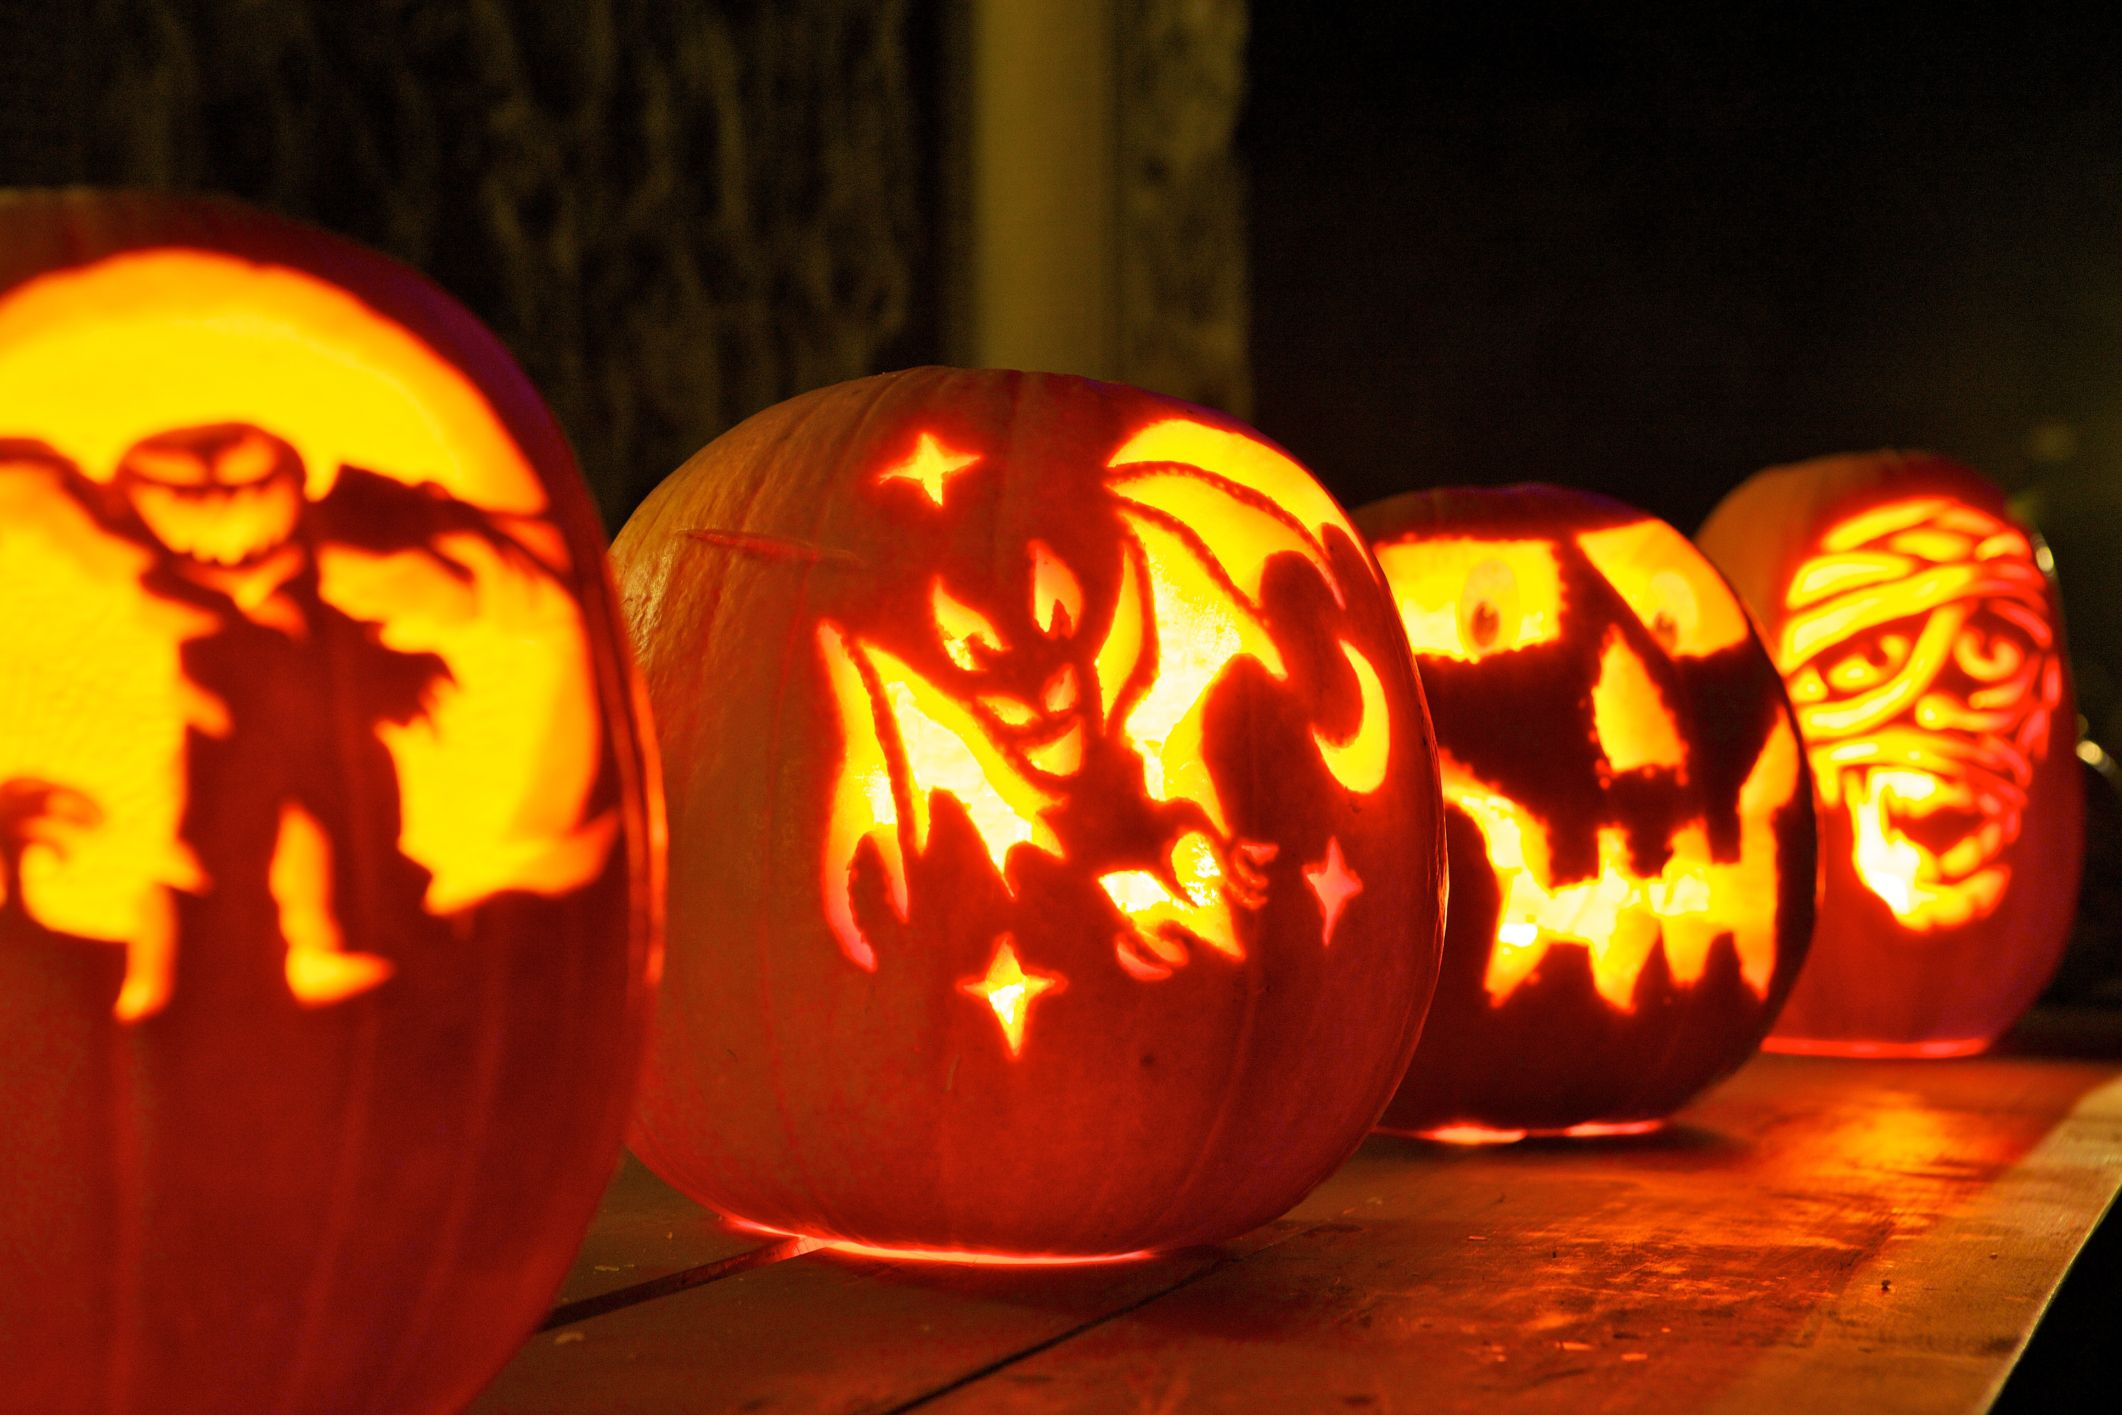 why do we carve pumpkins on halloween?